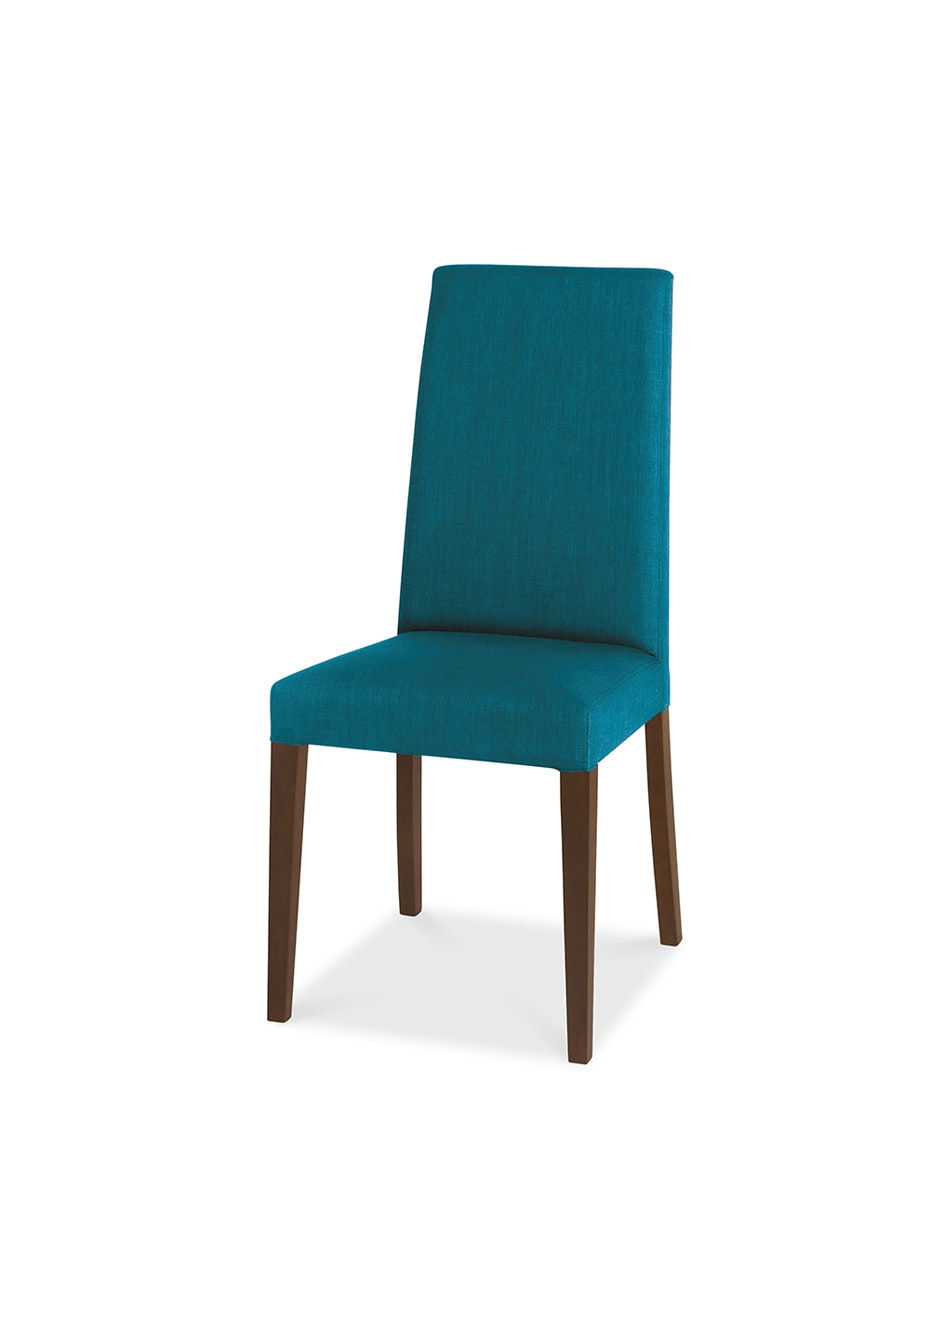 Furniture By Design - Miles Chair- Walnut and Teal